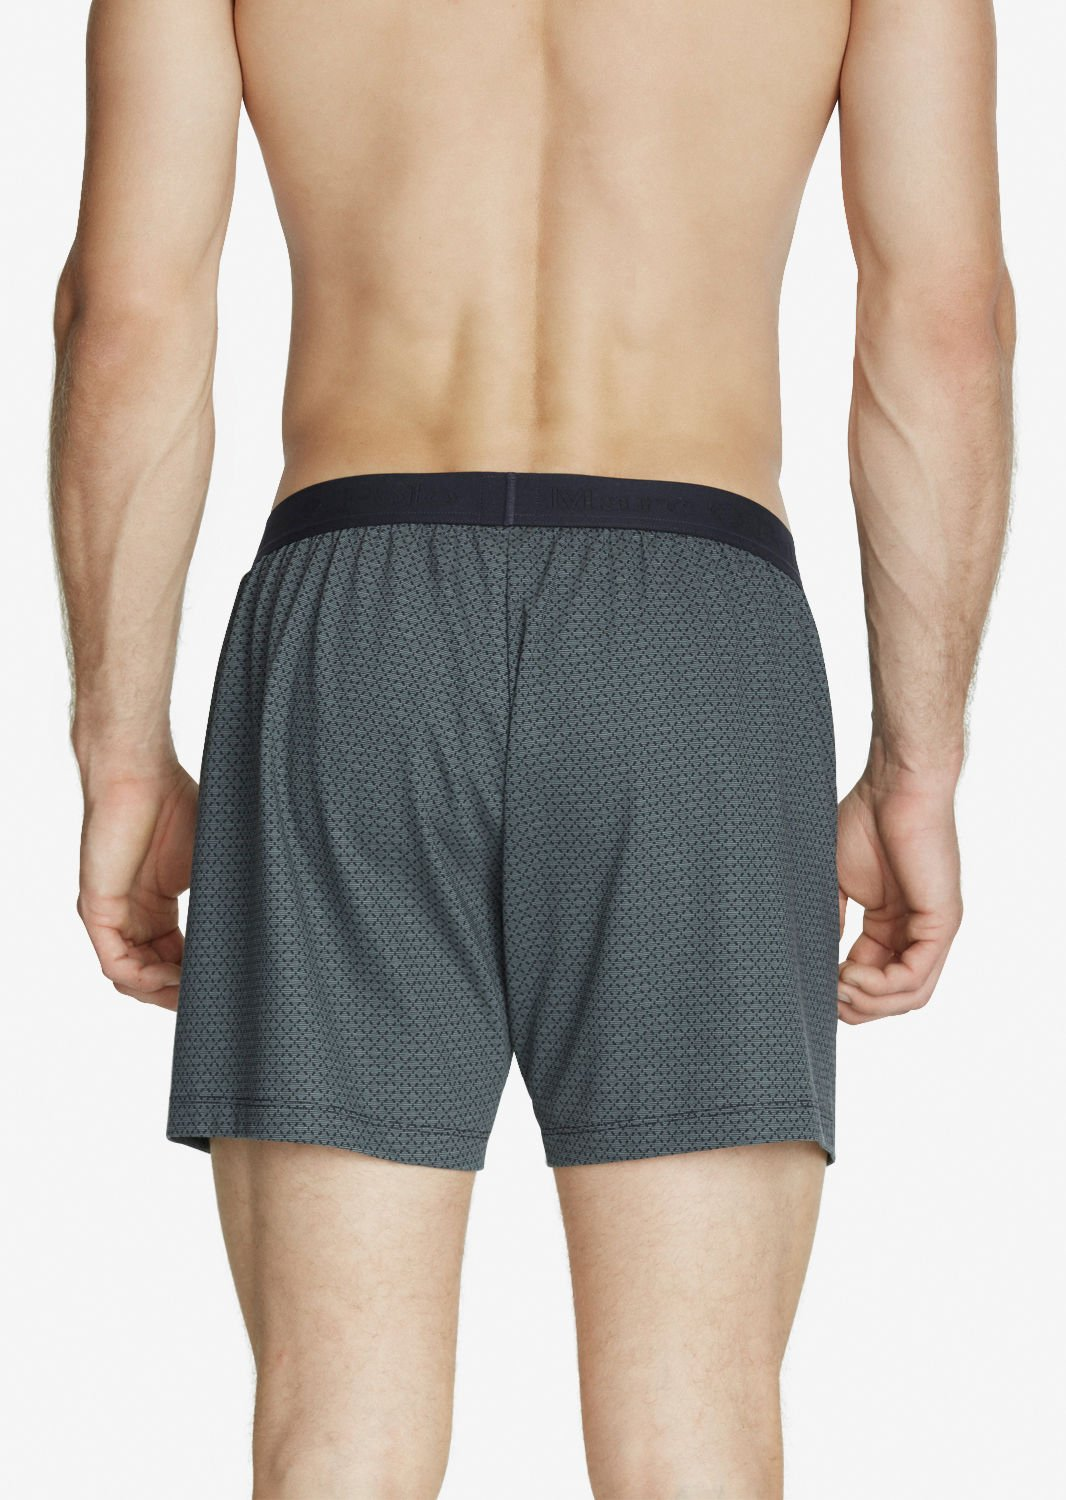 back shorts marc o polo